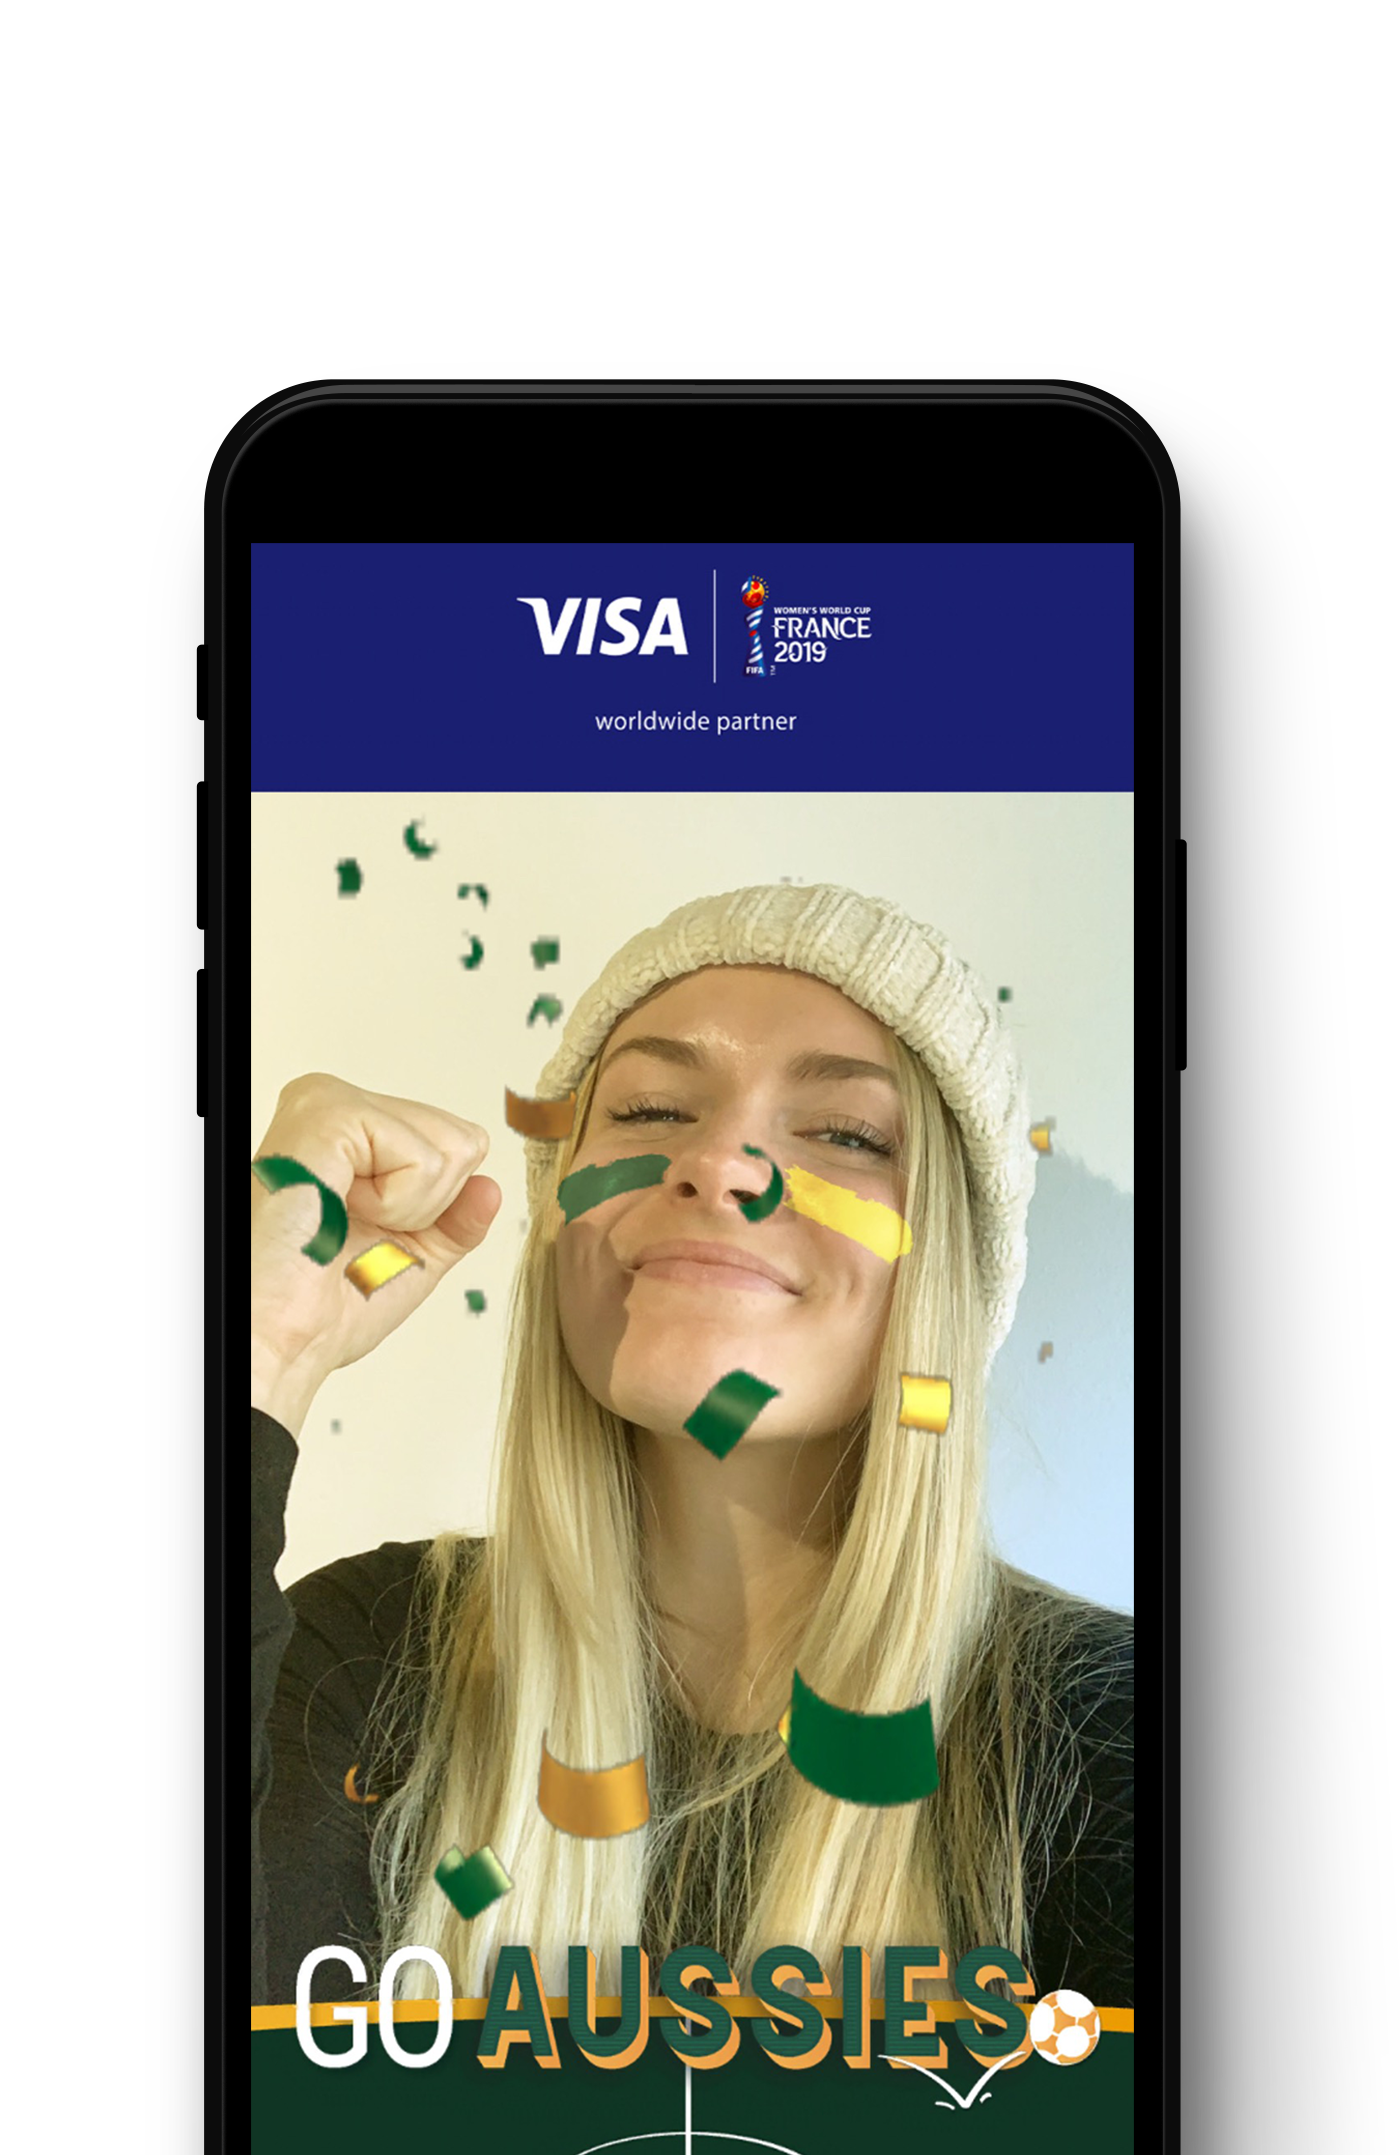 VISA and WWC 19 Experience